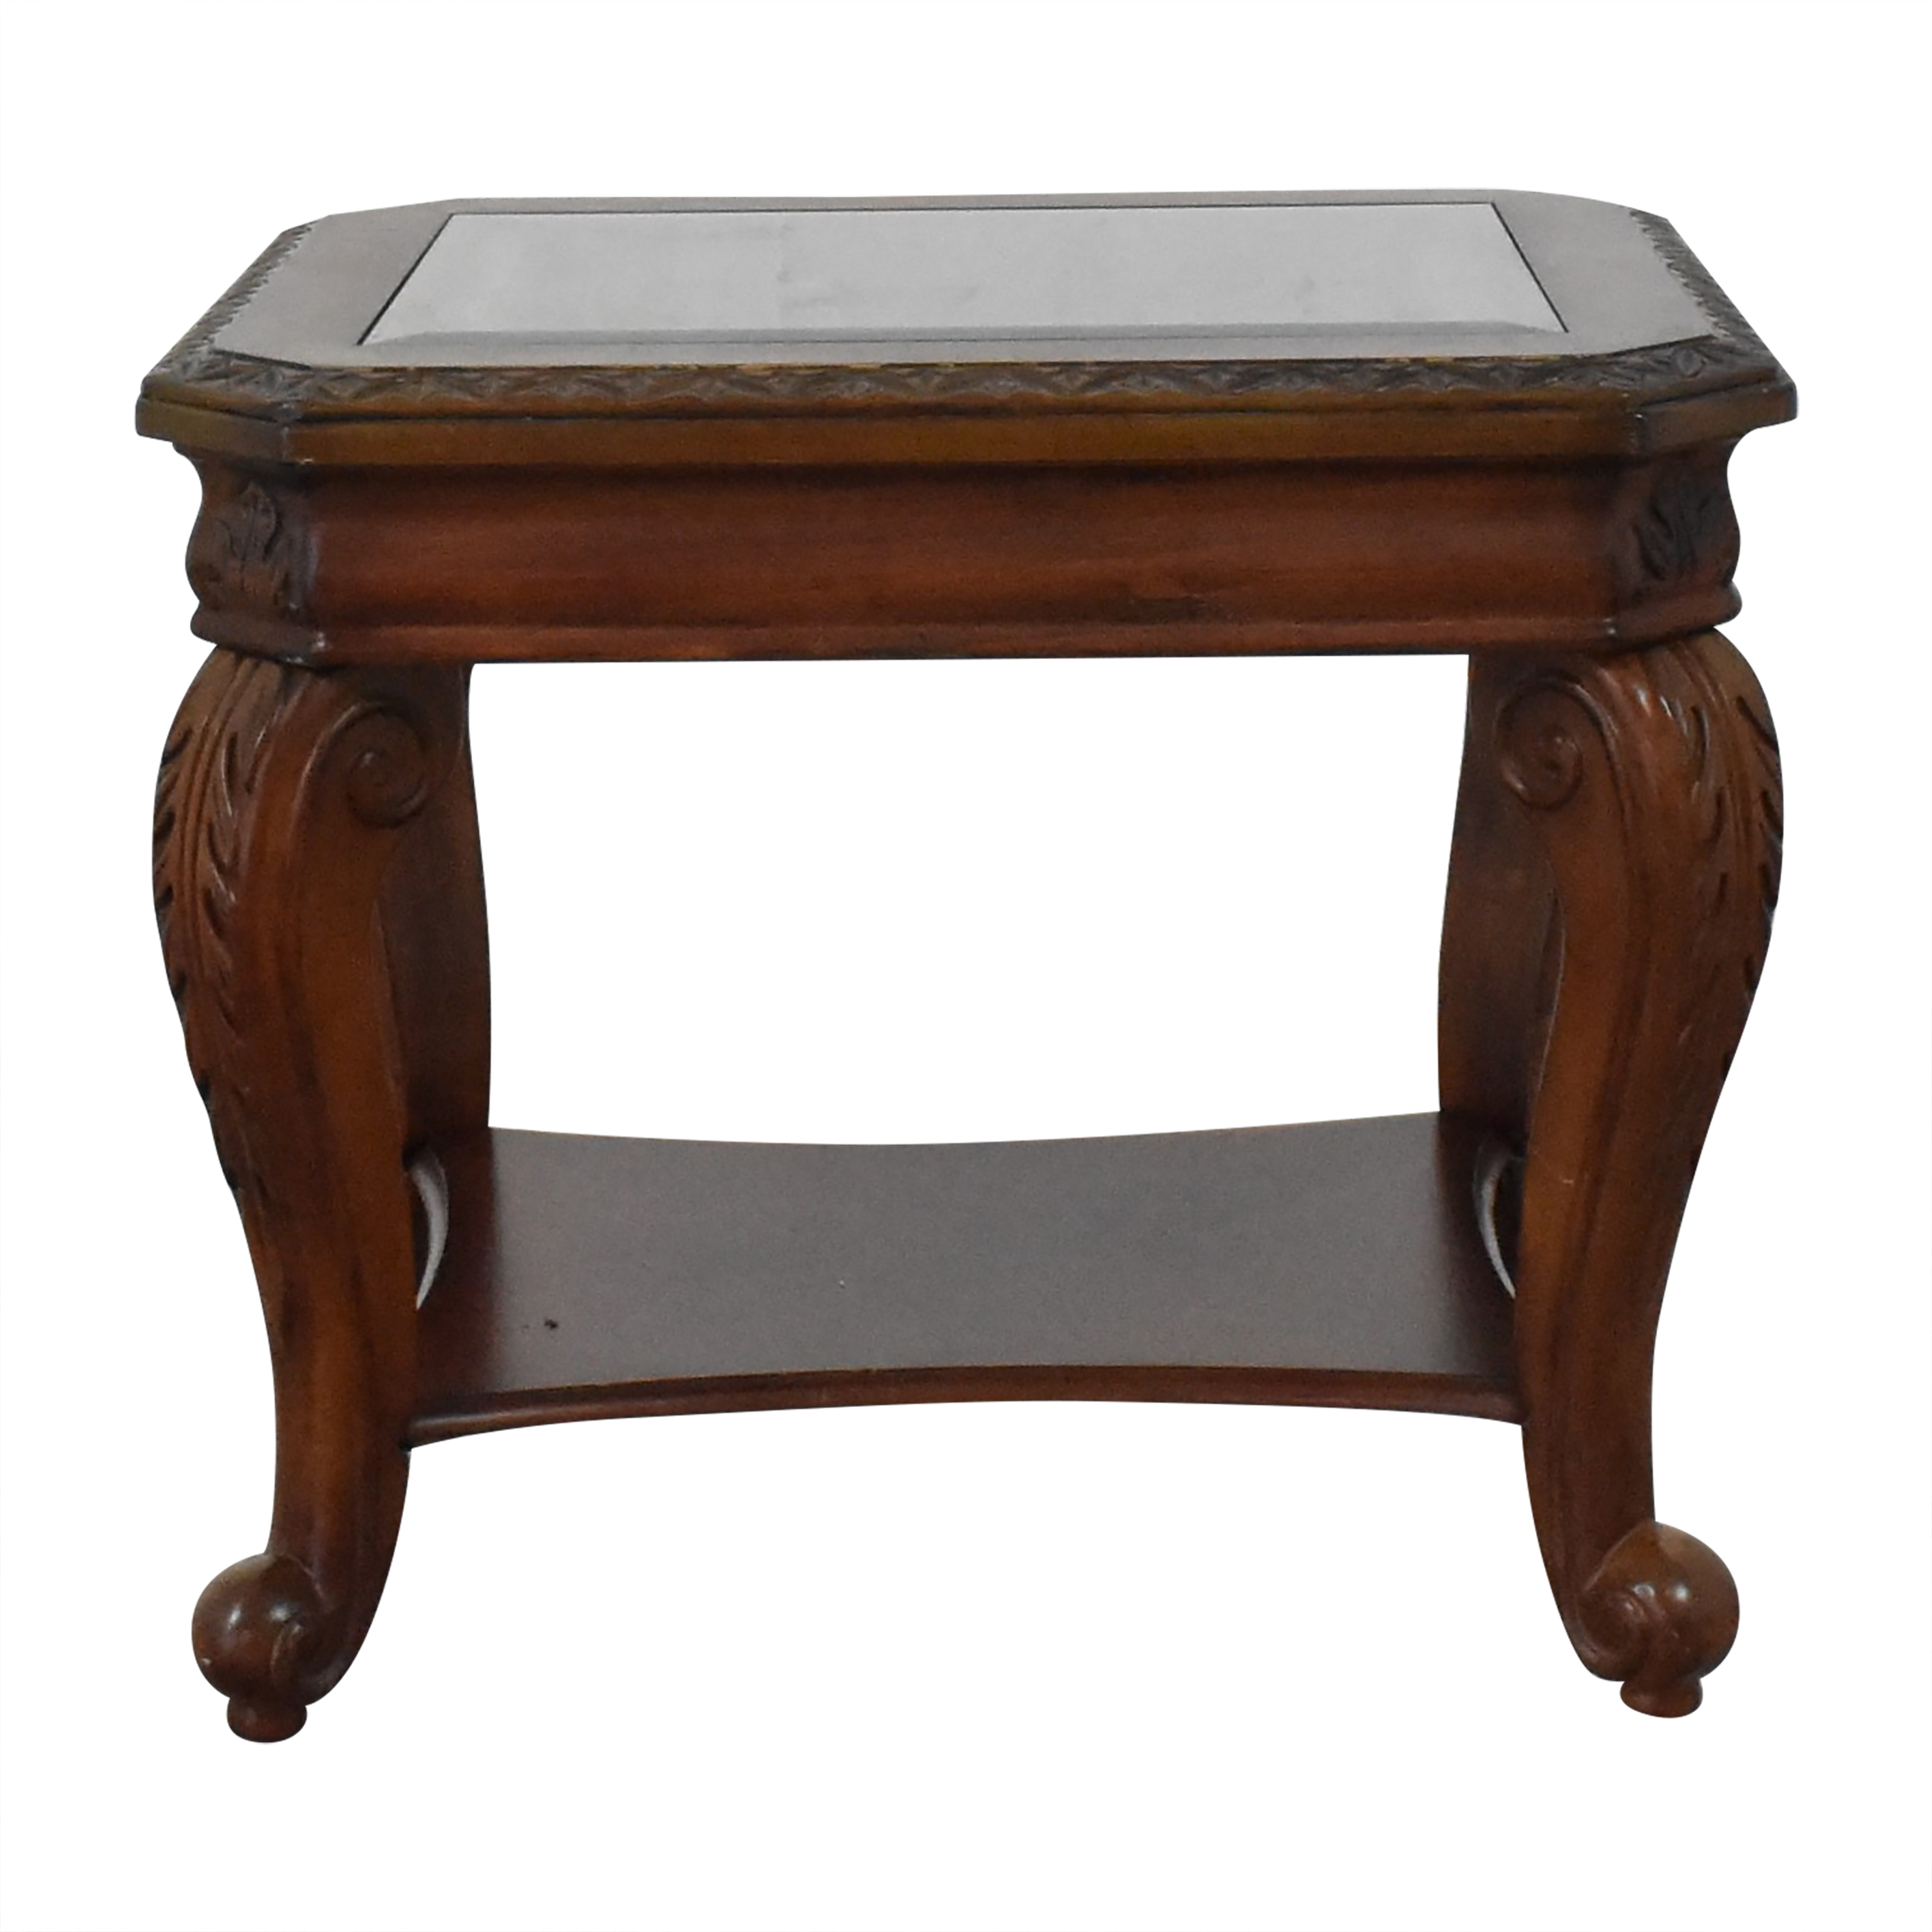 Costco Costco End Table with Bottom Shelf on sale